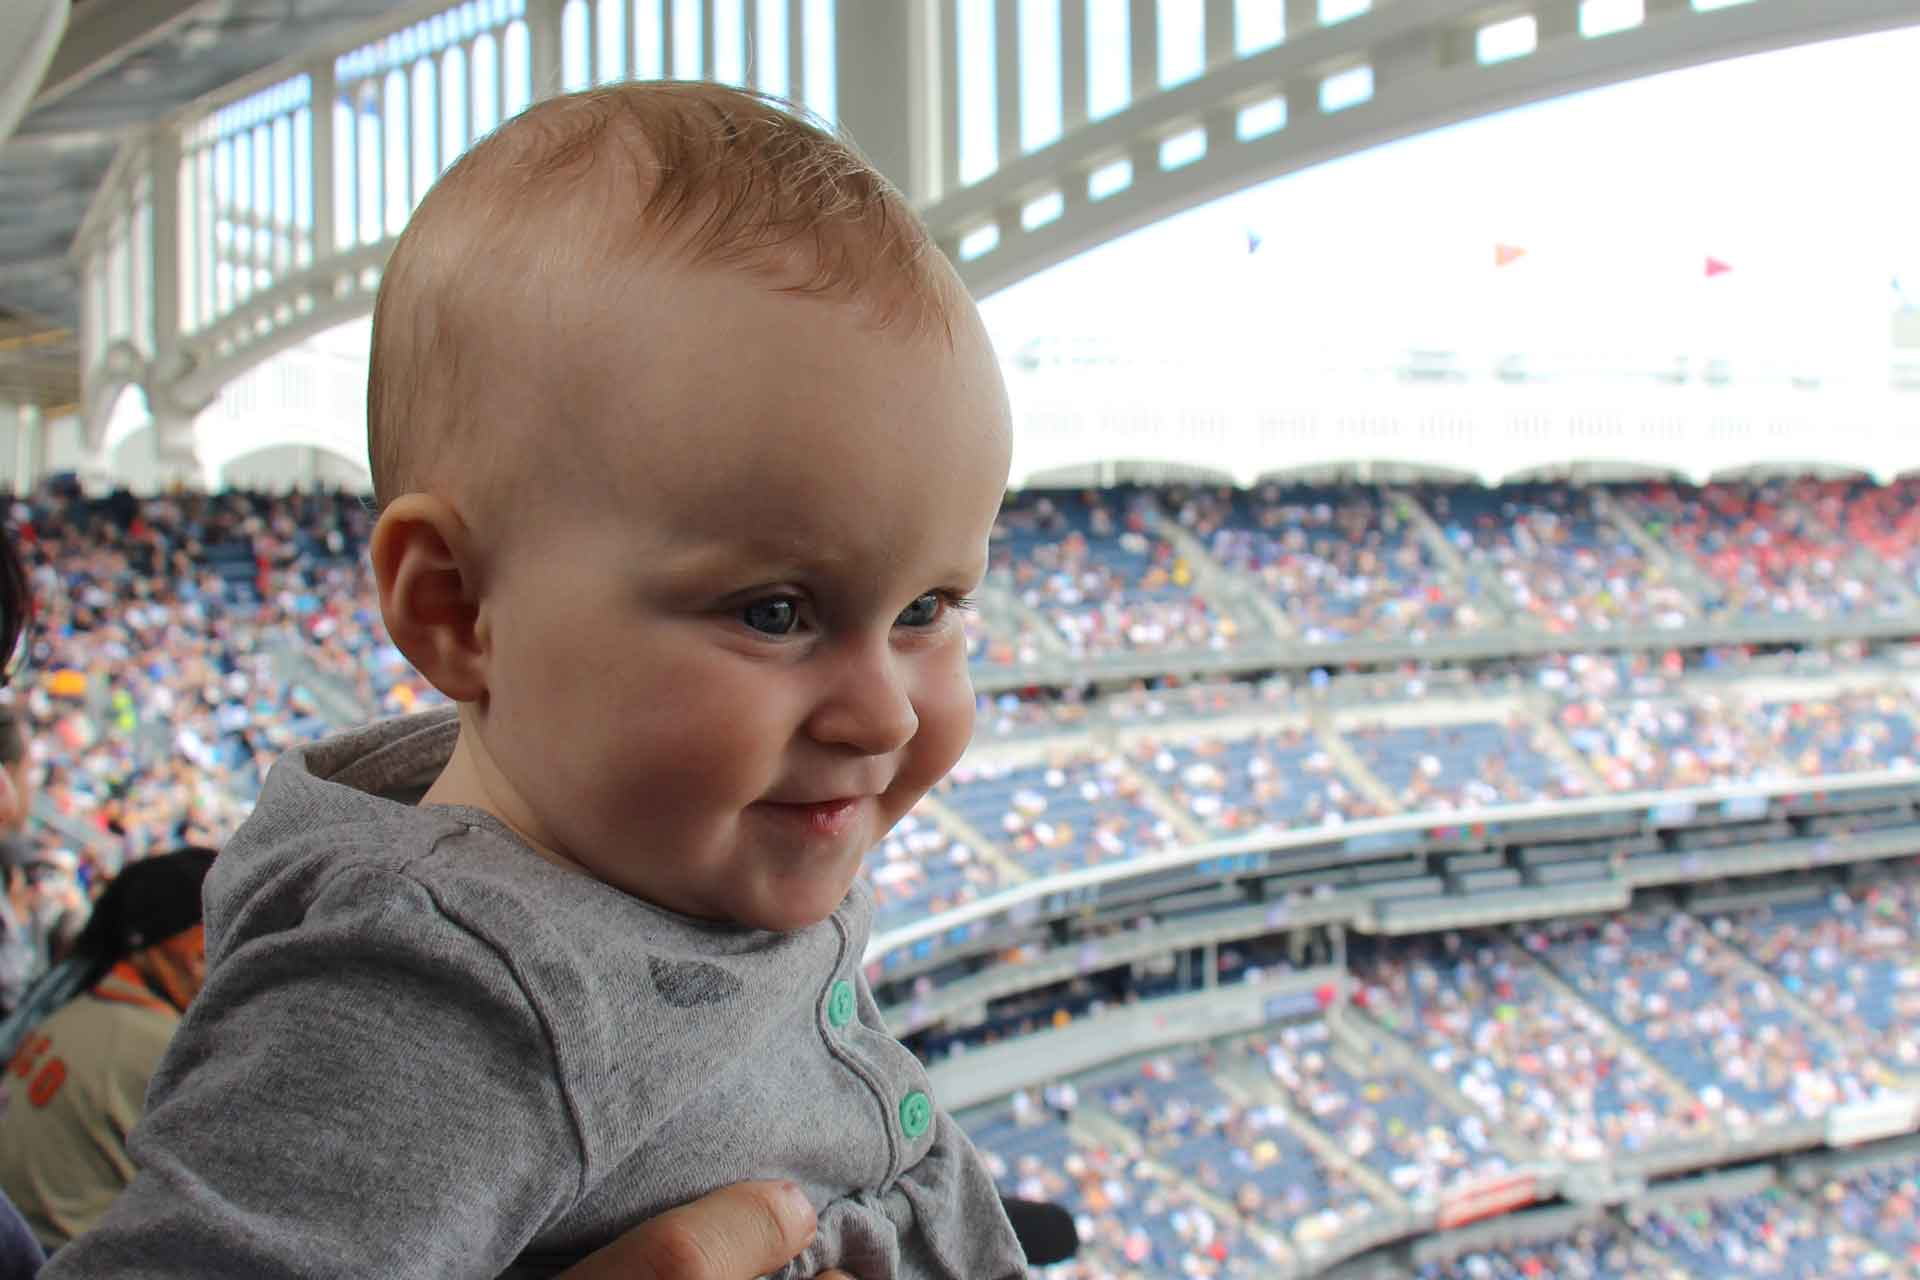 Baseball game with a baby in NYC